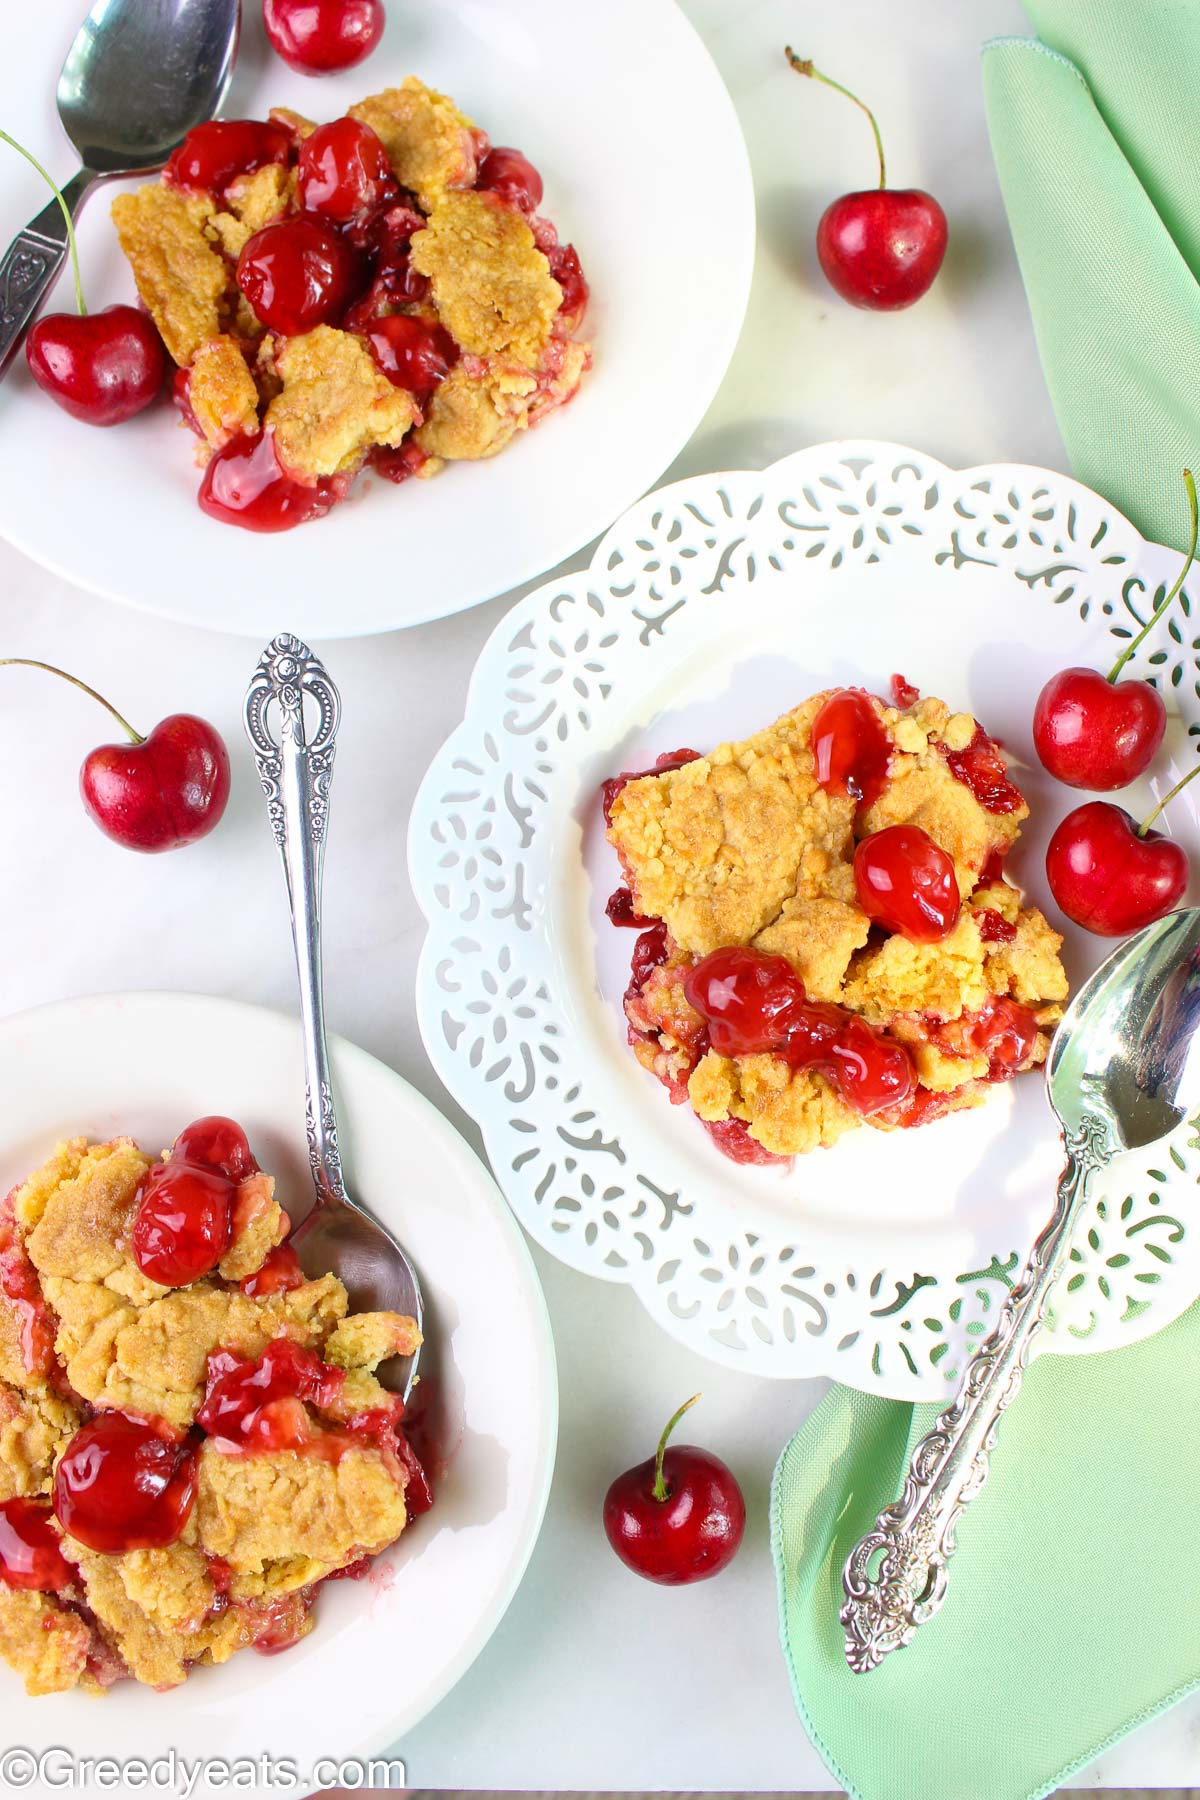 Cherry dump cake slices with fresh cherries served in white plates.